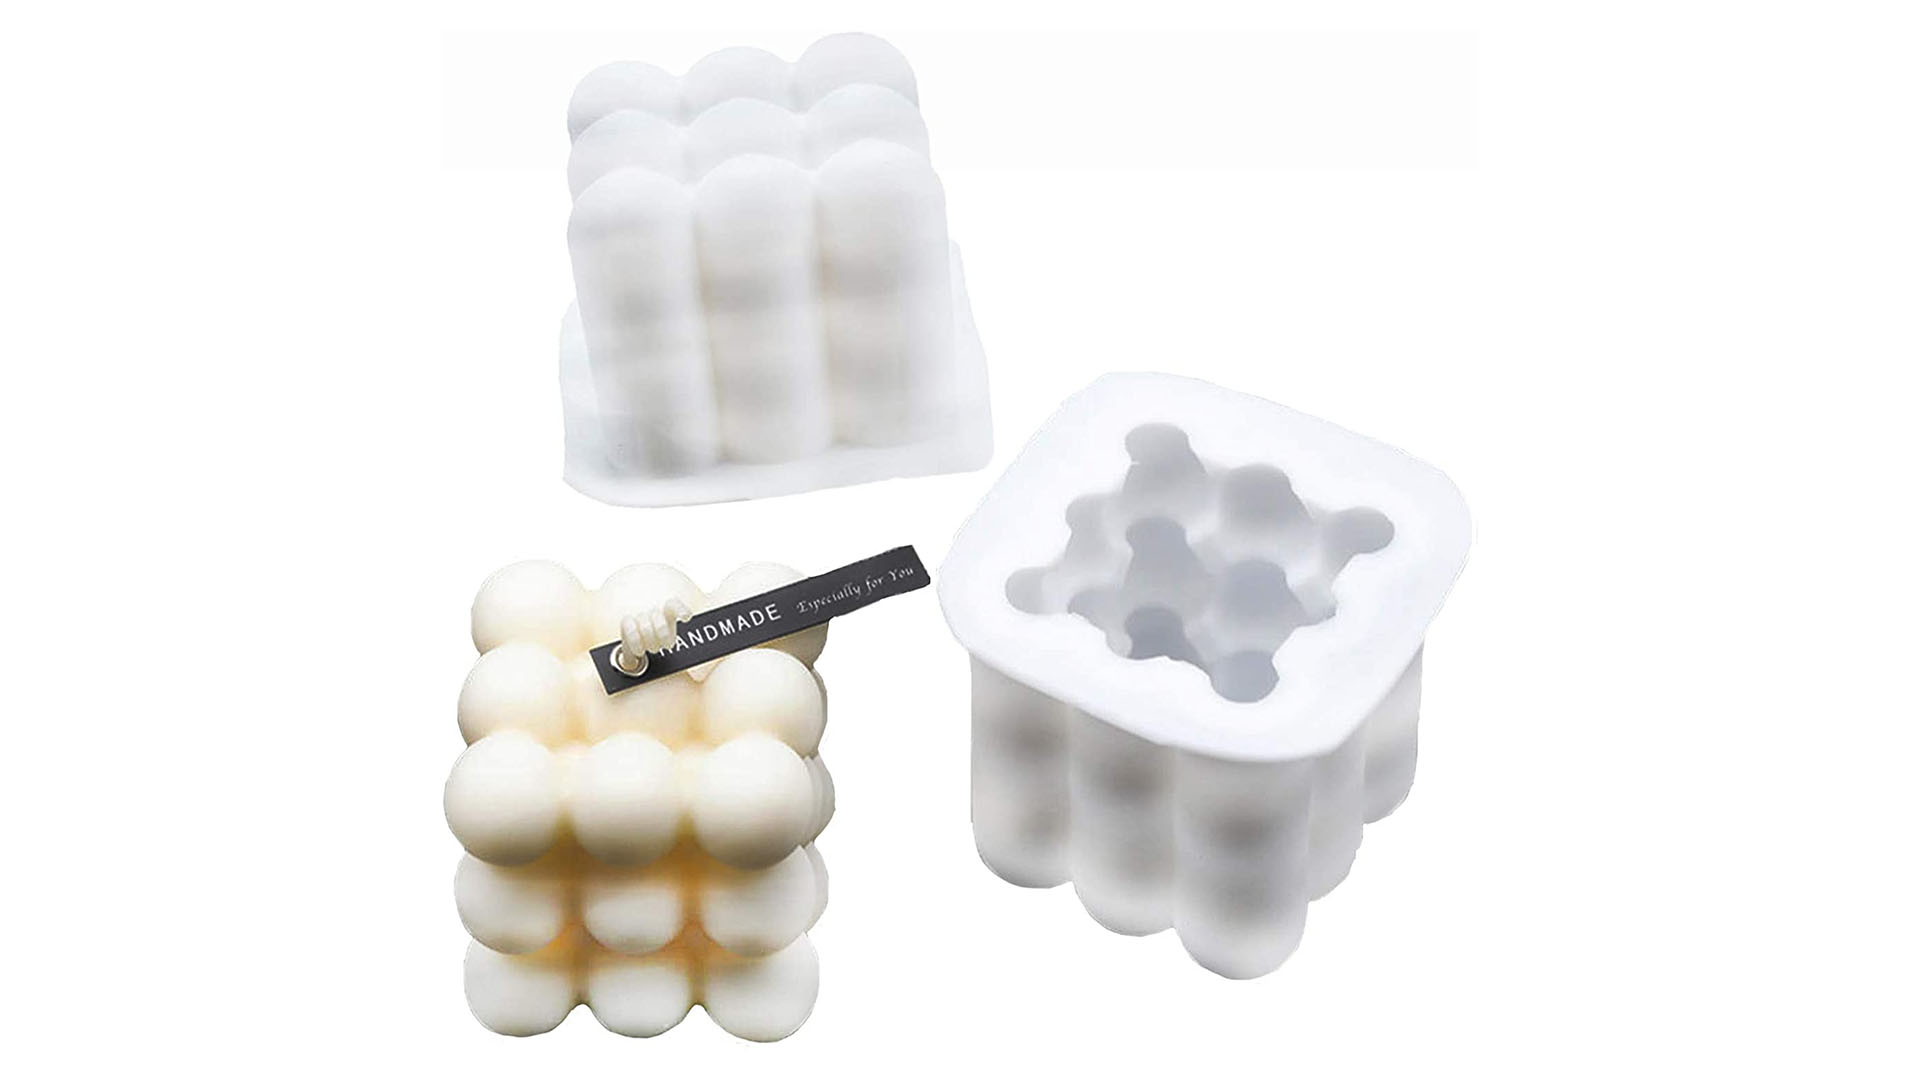 DIY Magic Box Rubik's Cube Candle Mould 3D Handmade Candles Molds for Candle Making Bubbles Silicone Candle Mold DH-Silicone Factory